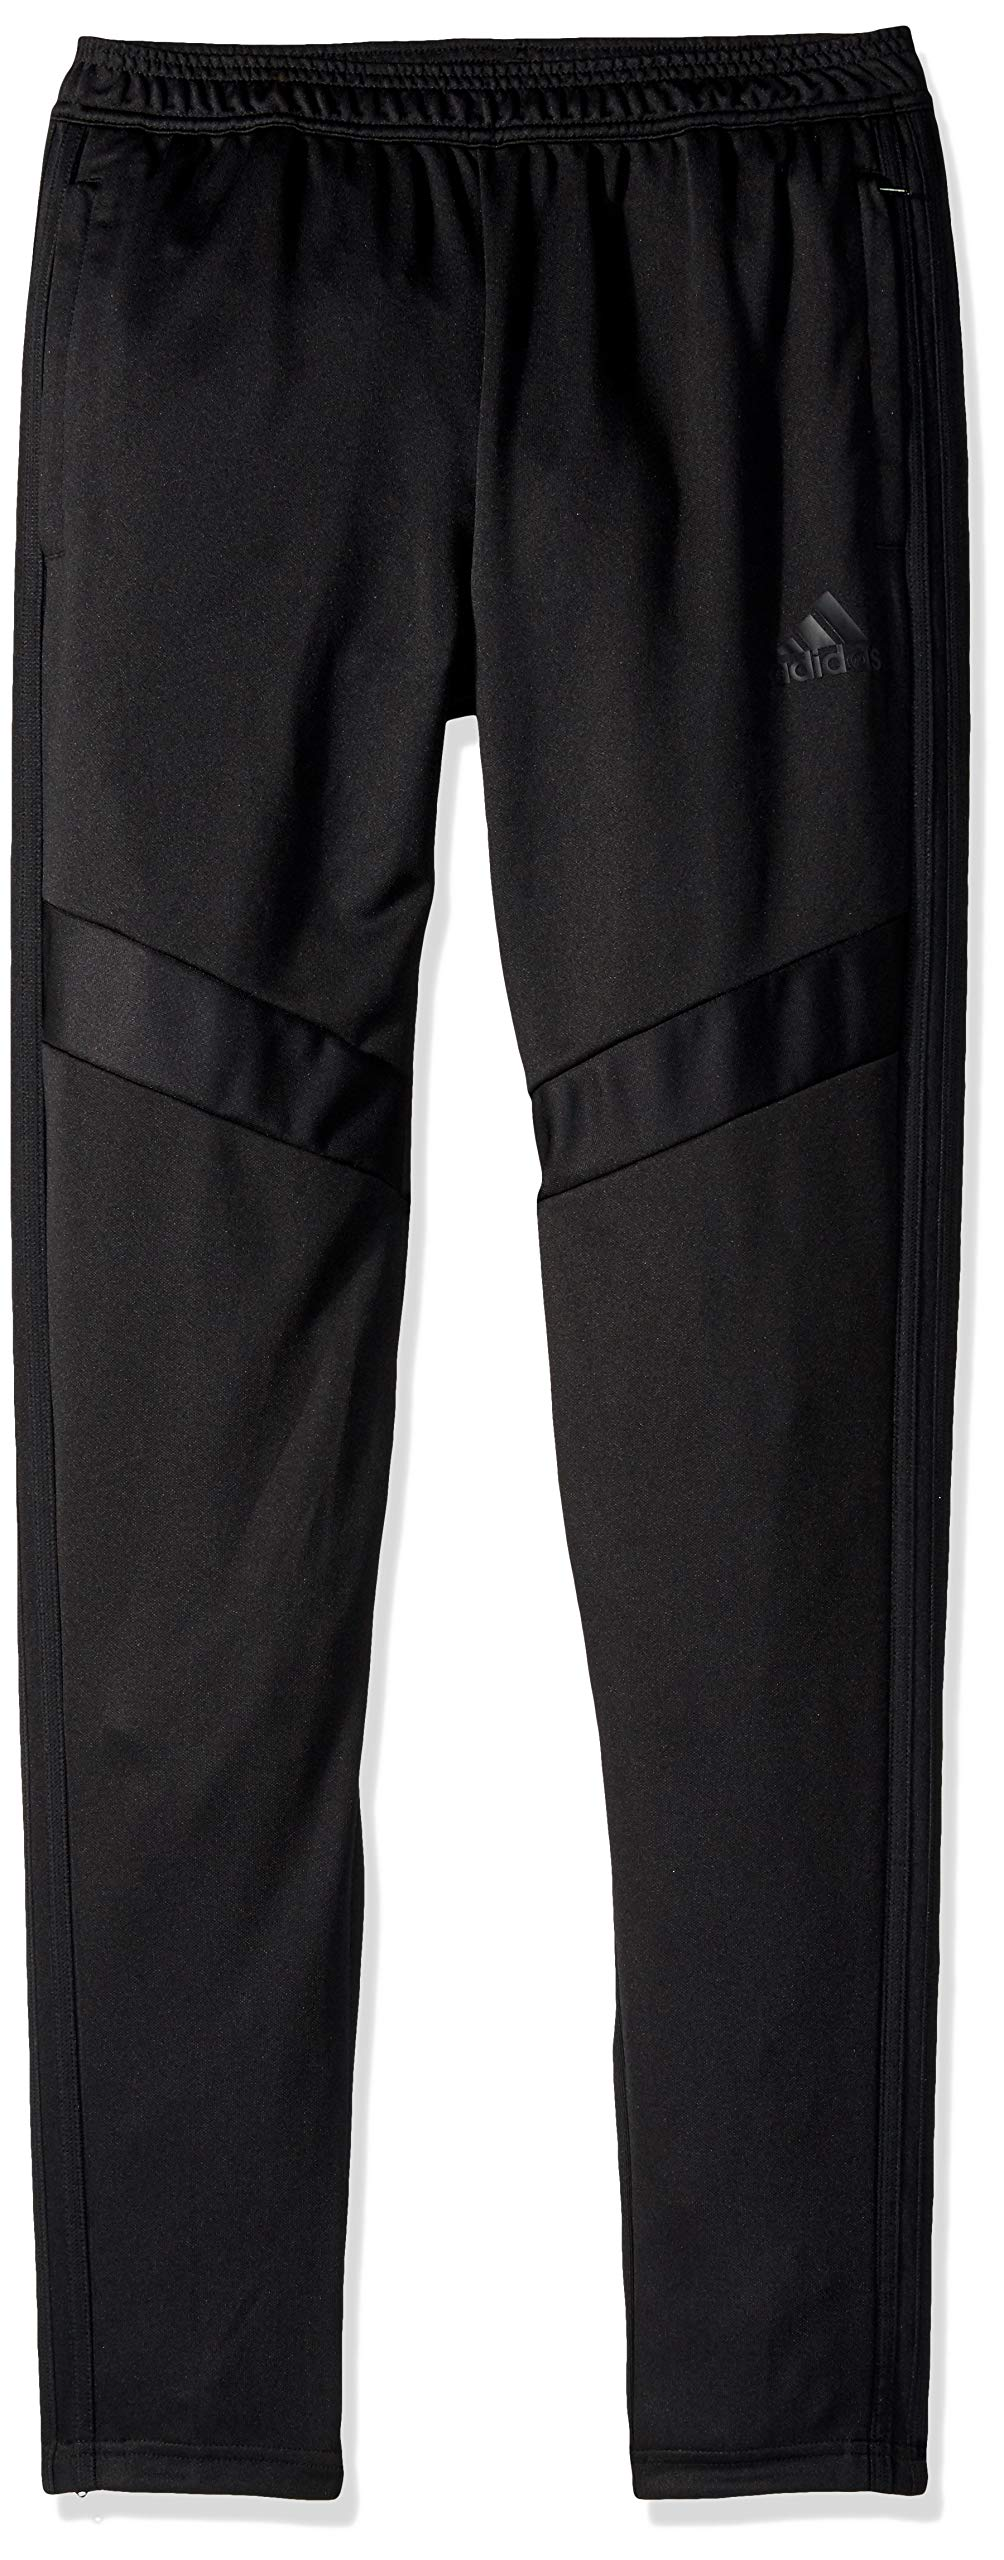 adidas Youth Tiro19 Youth Training Pants, Black, X-Small by adidas (Image #1)